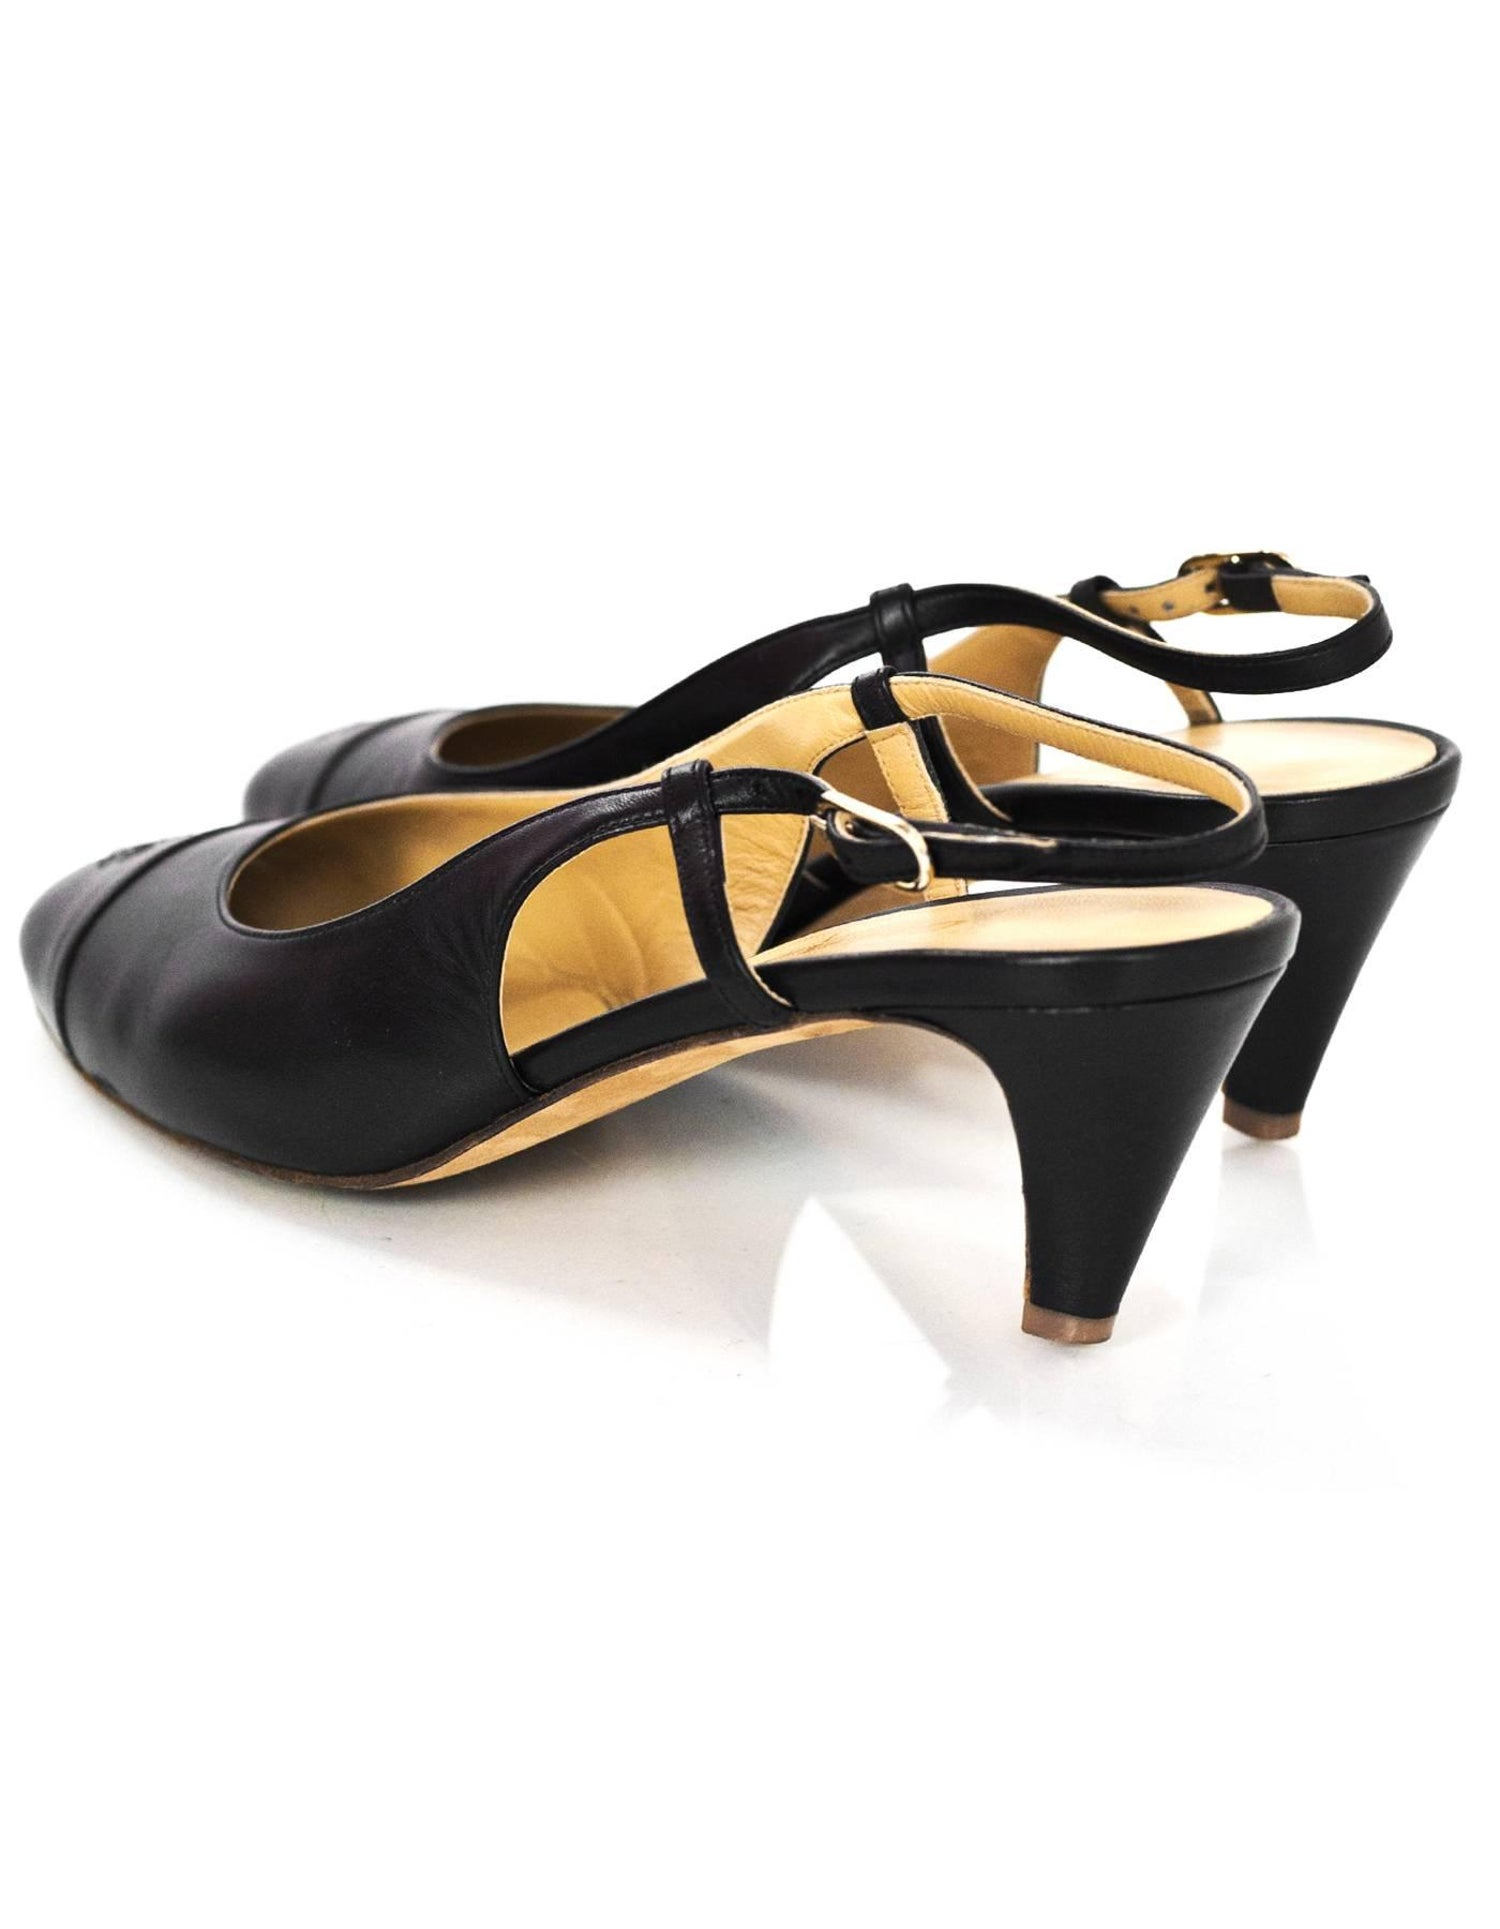 8860a891dc Chanel Black Leather Cap-Toe Slingback Pumps Sz 38.5 with Box For Sale at  1stdibs